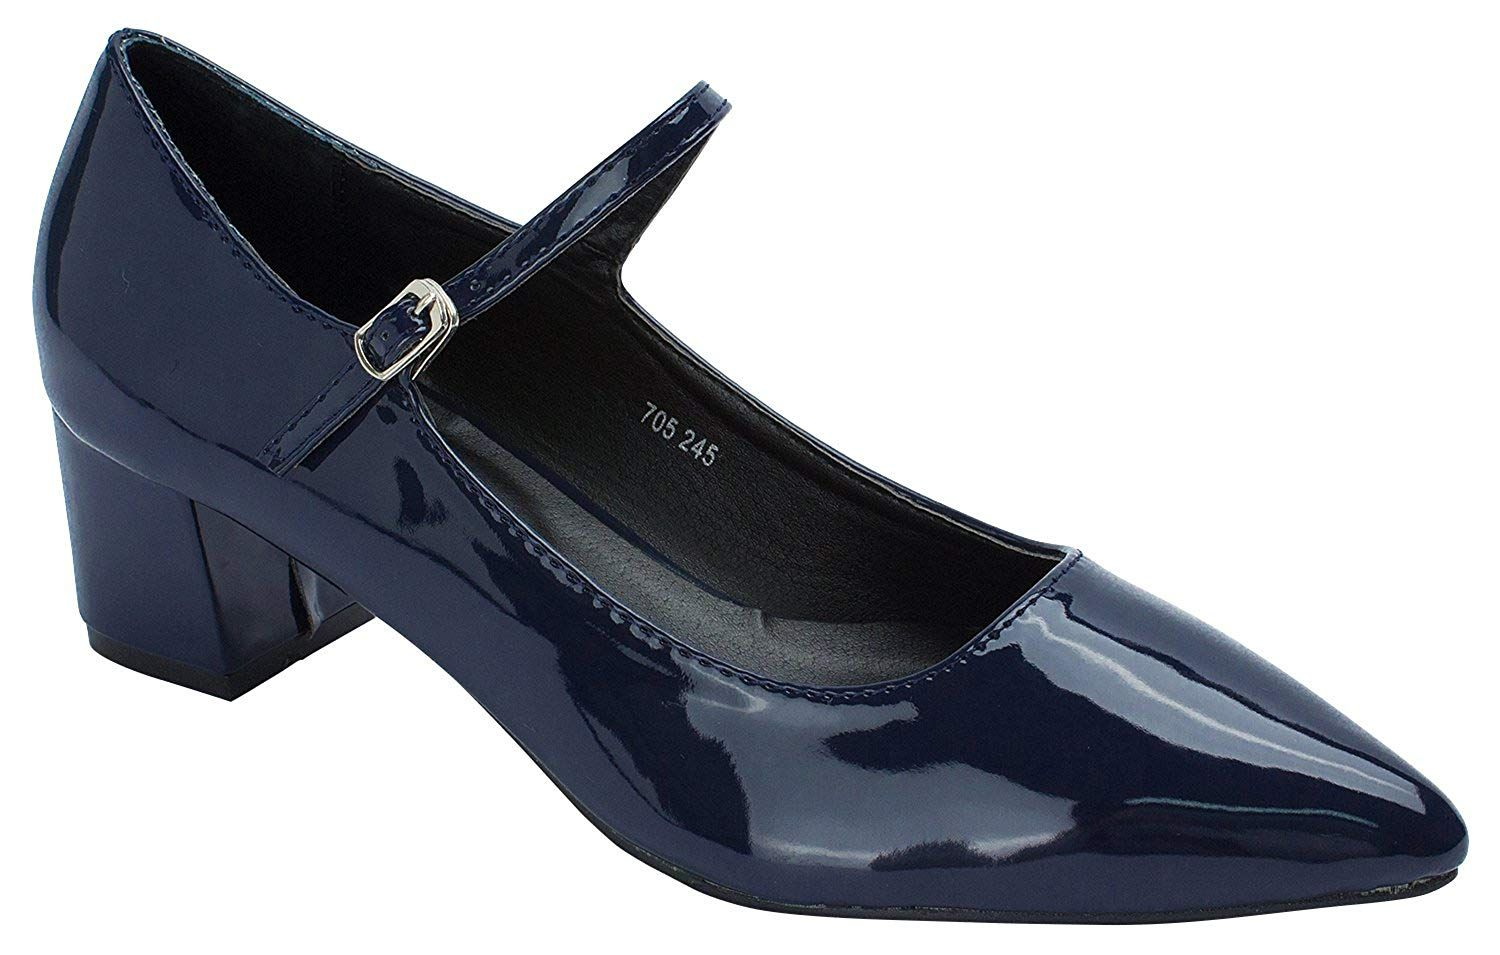 8a3811f32989 Womens Point Toe Mary Janes Mid Heel Shoes. AnnaKastle Womens Point Toe  Patent Mary Janes Shoes US 5 6 7 8. Women s Shoes